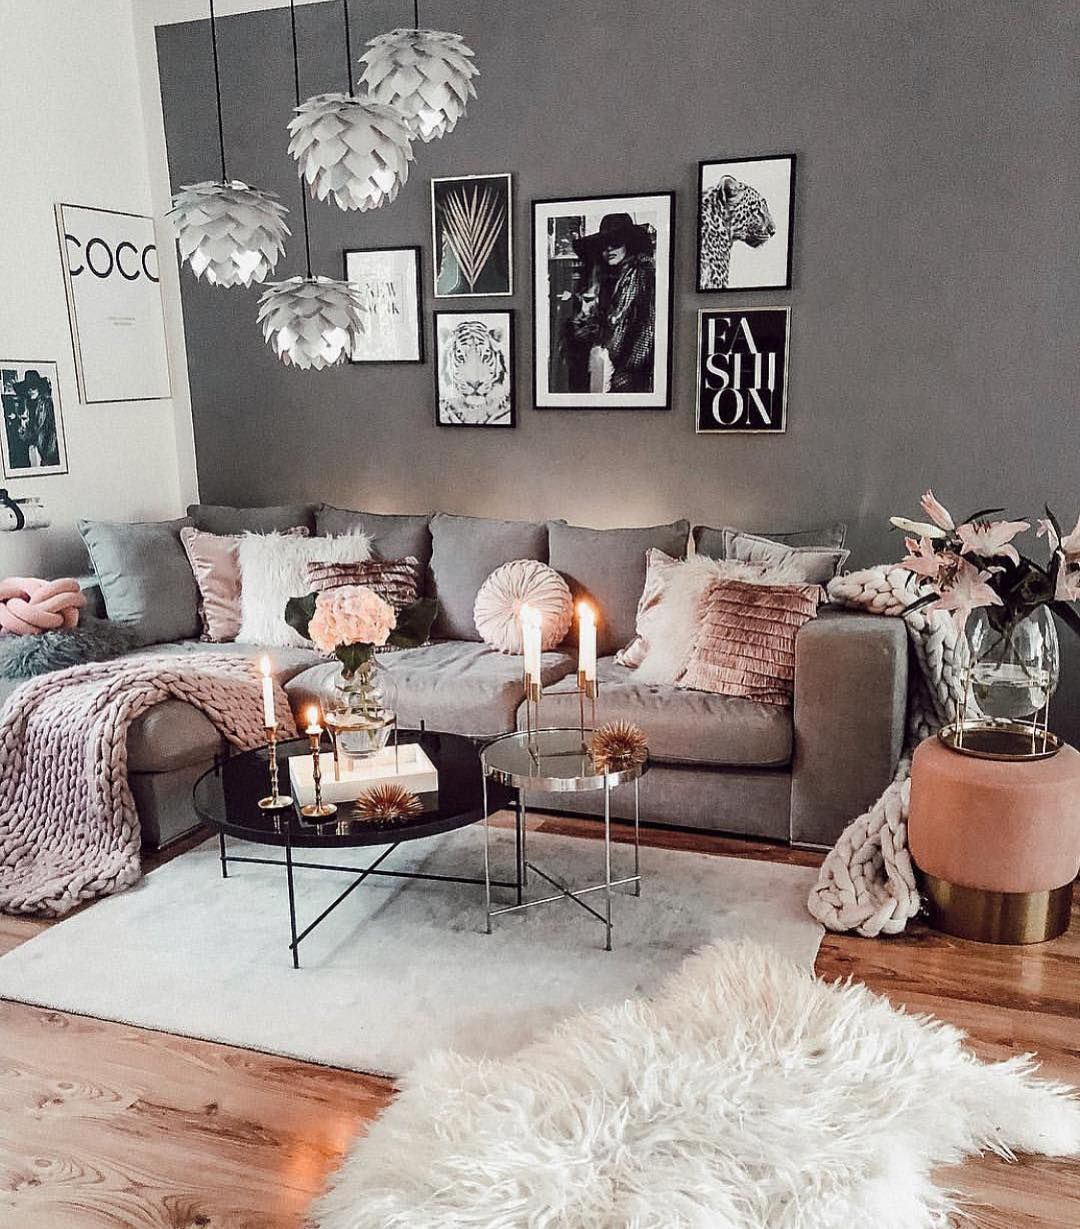 Have A Lovely Sunday Evening Double Tap If You This Credi Luxury Room Decor Luxury Rooms Living Room Designs Ideas for decorating your living room